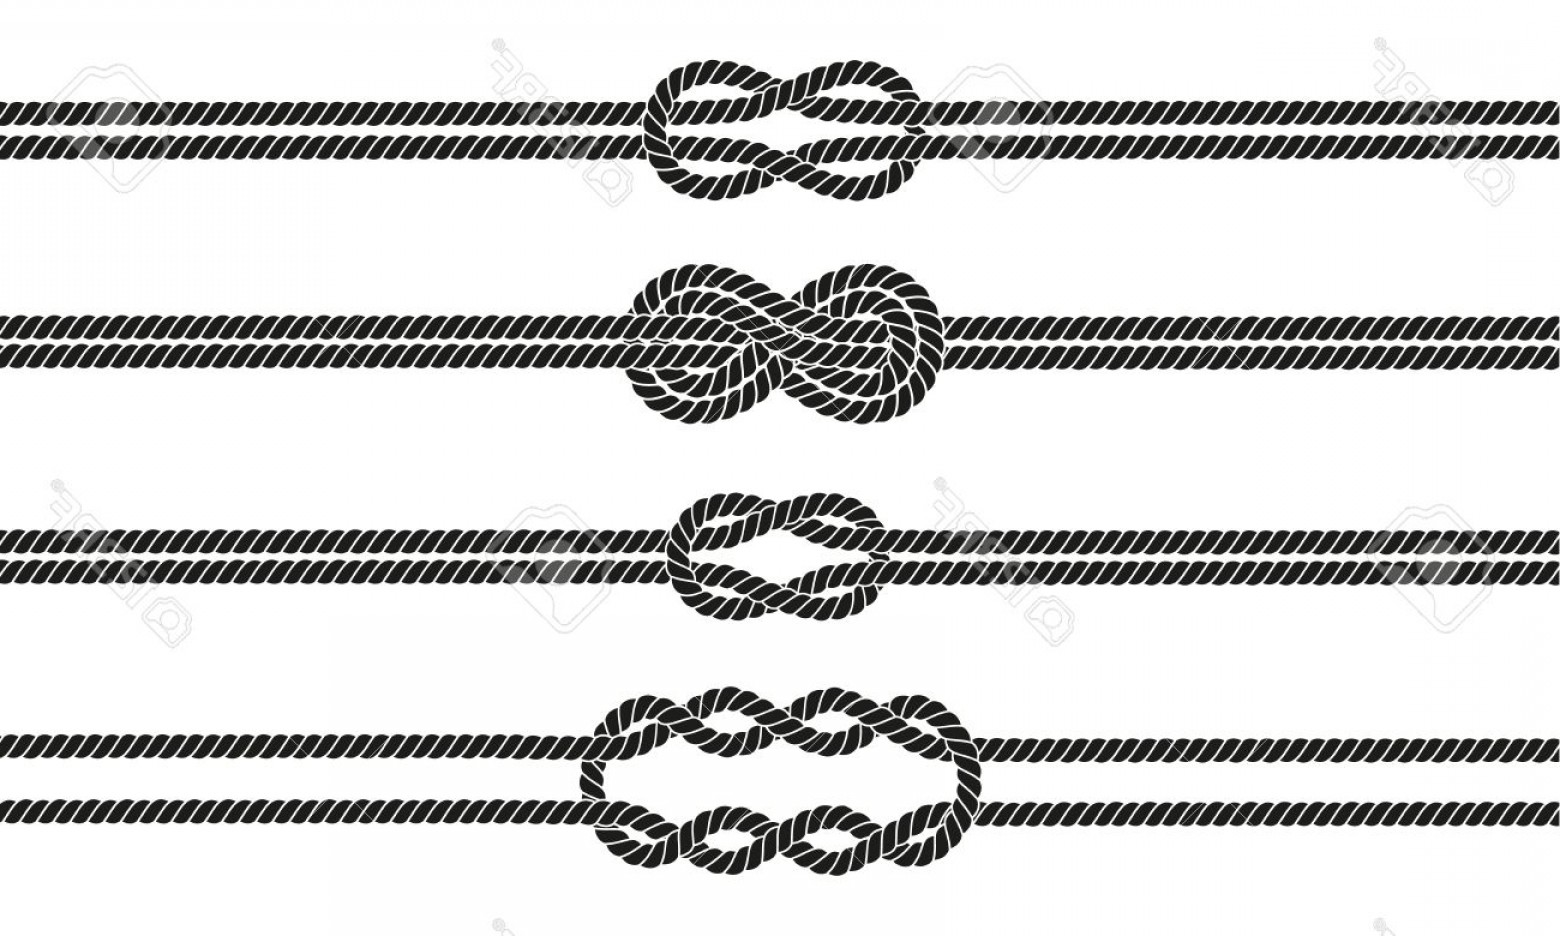 Design Vector Image Of Rope: Photostock Vector Sailor Knot Dividers Set Nautical Rope Infinity Sign Rope Border Tying The Knot Graphic Design Eleme